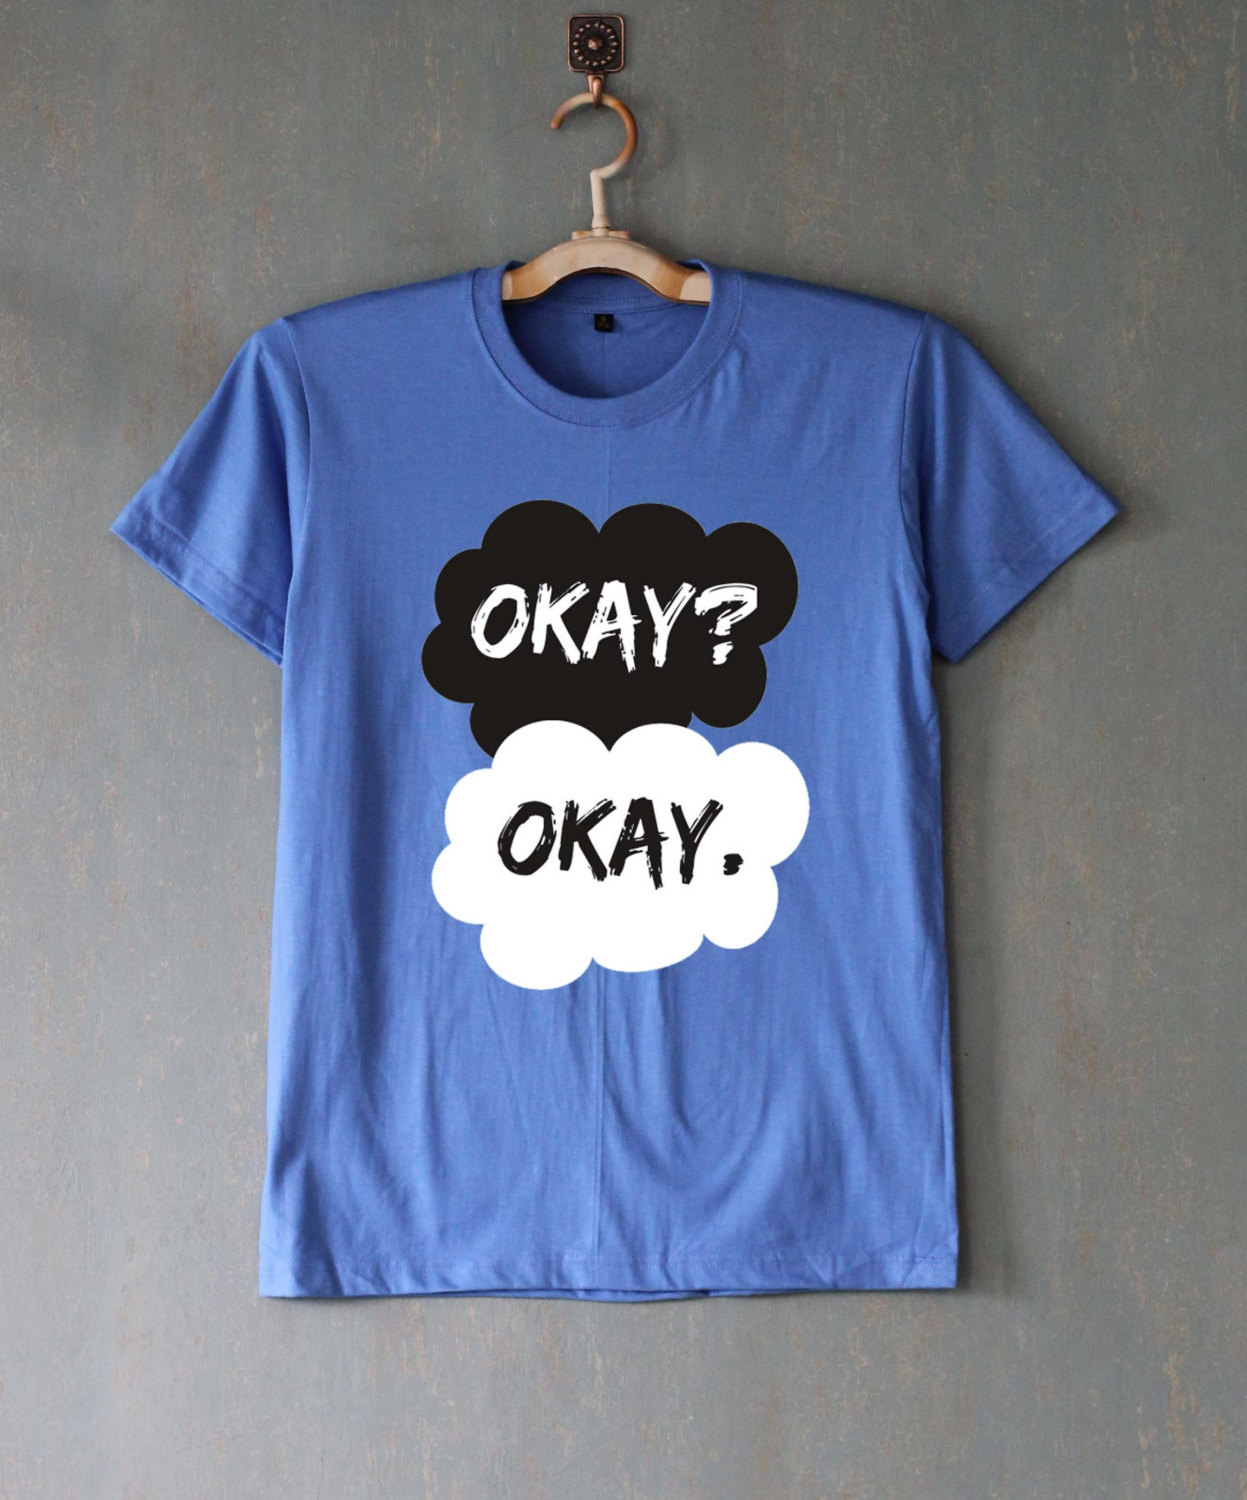 Okay? Okay. Shirt The Fault in Our Stars Shirts TShirt T-Shirt TShirt Tee Shirt Unisex - Size S M L XL XXL